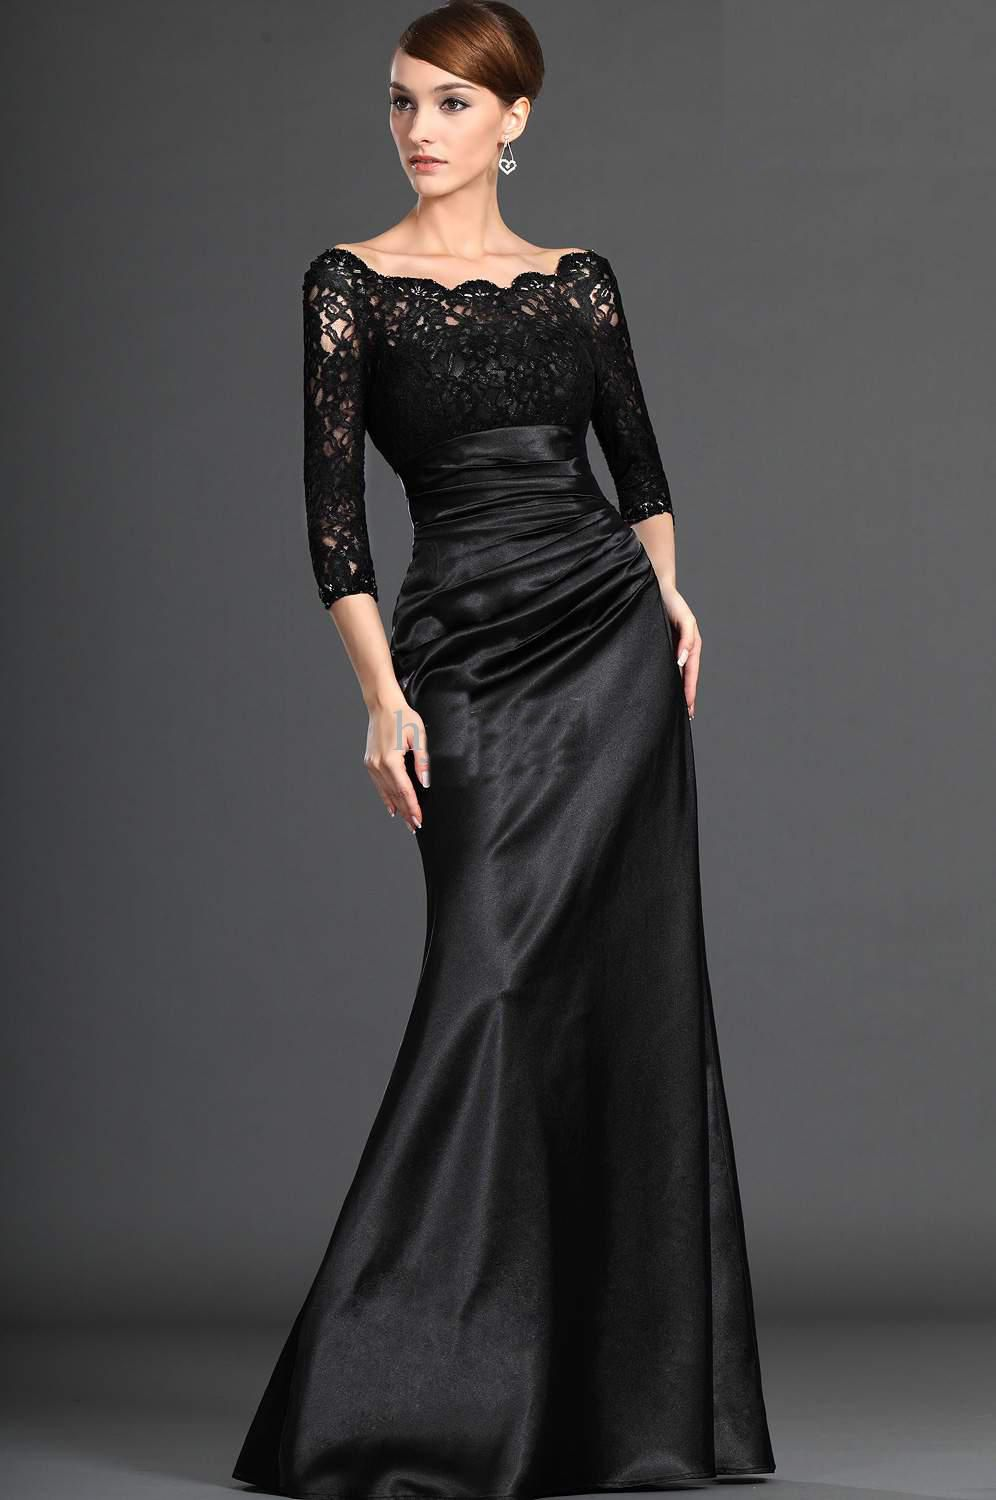 Long black bridesmaid dresses size black longsleeve wedding